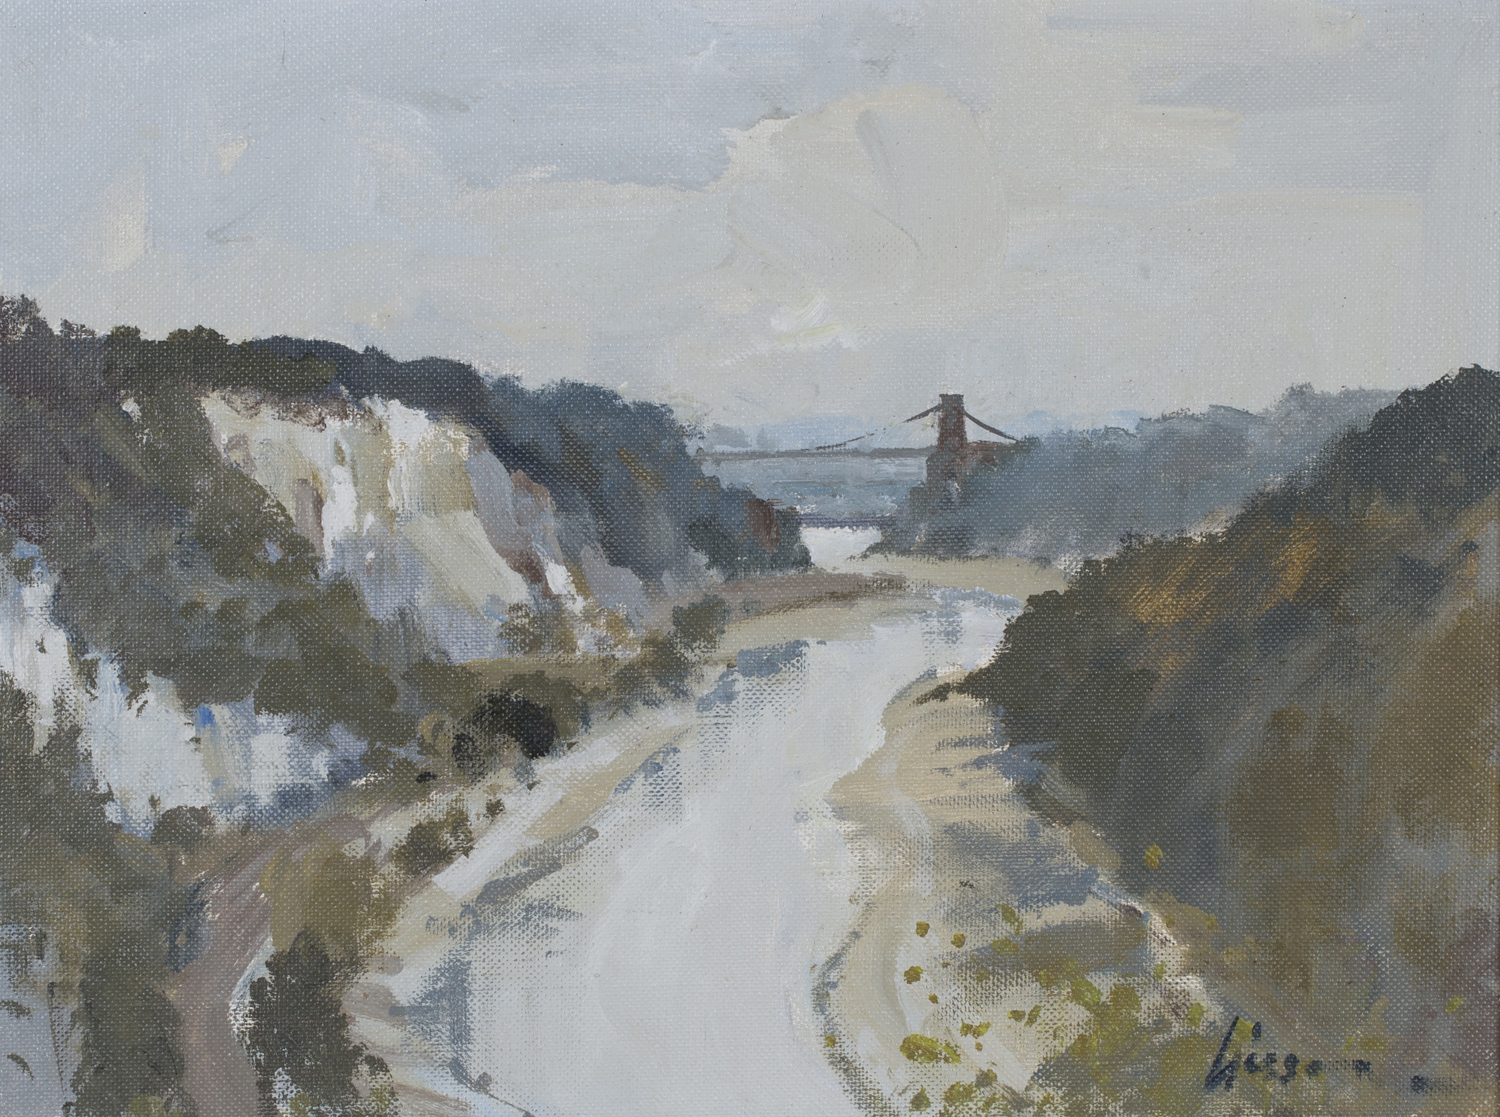 Lot 11 - Edward Wesson - 'The Avon Gorge' (View of the Clifton Suspension Bridge, Bristol), 20th century